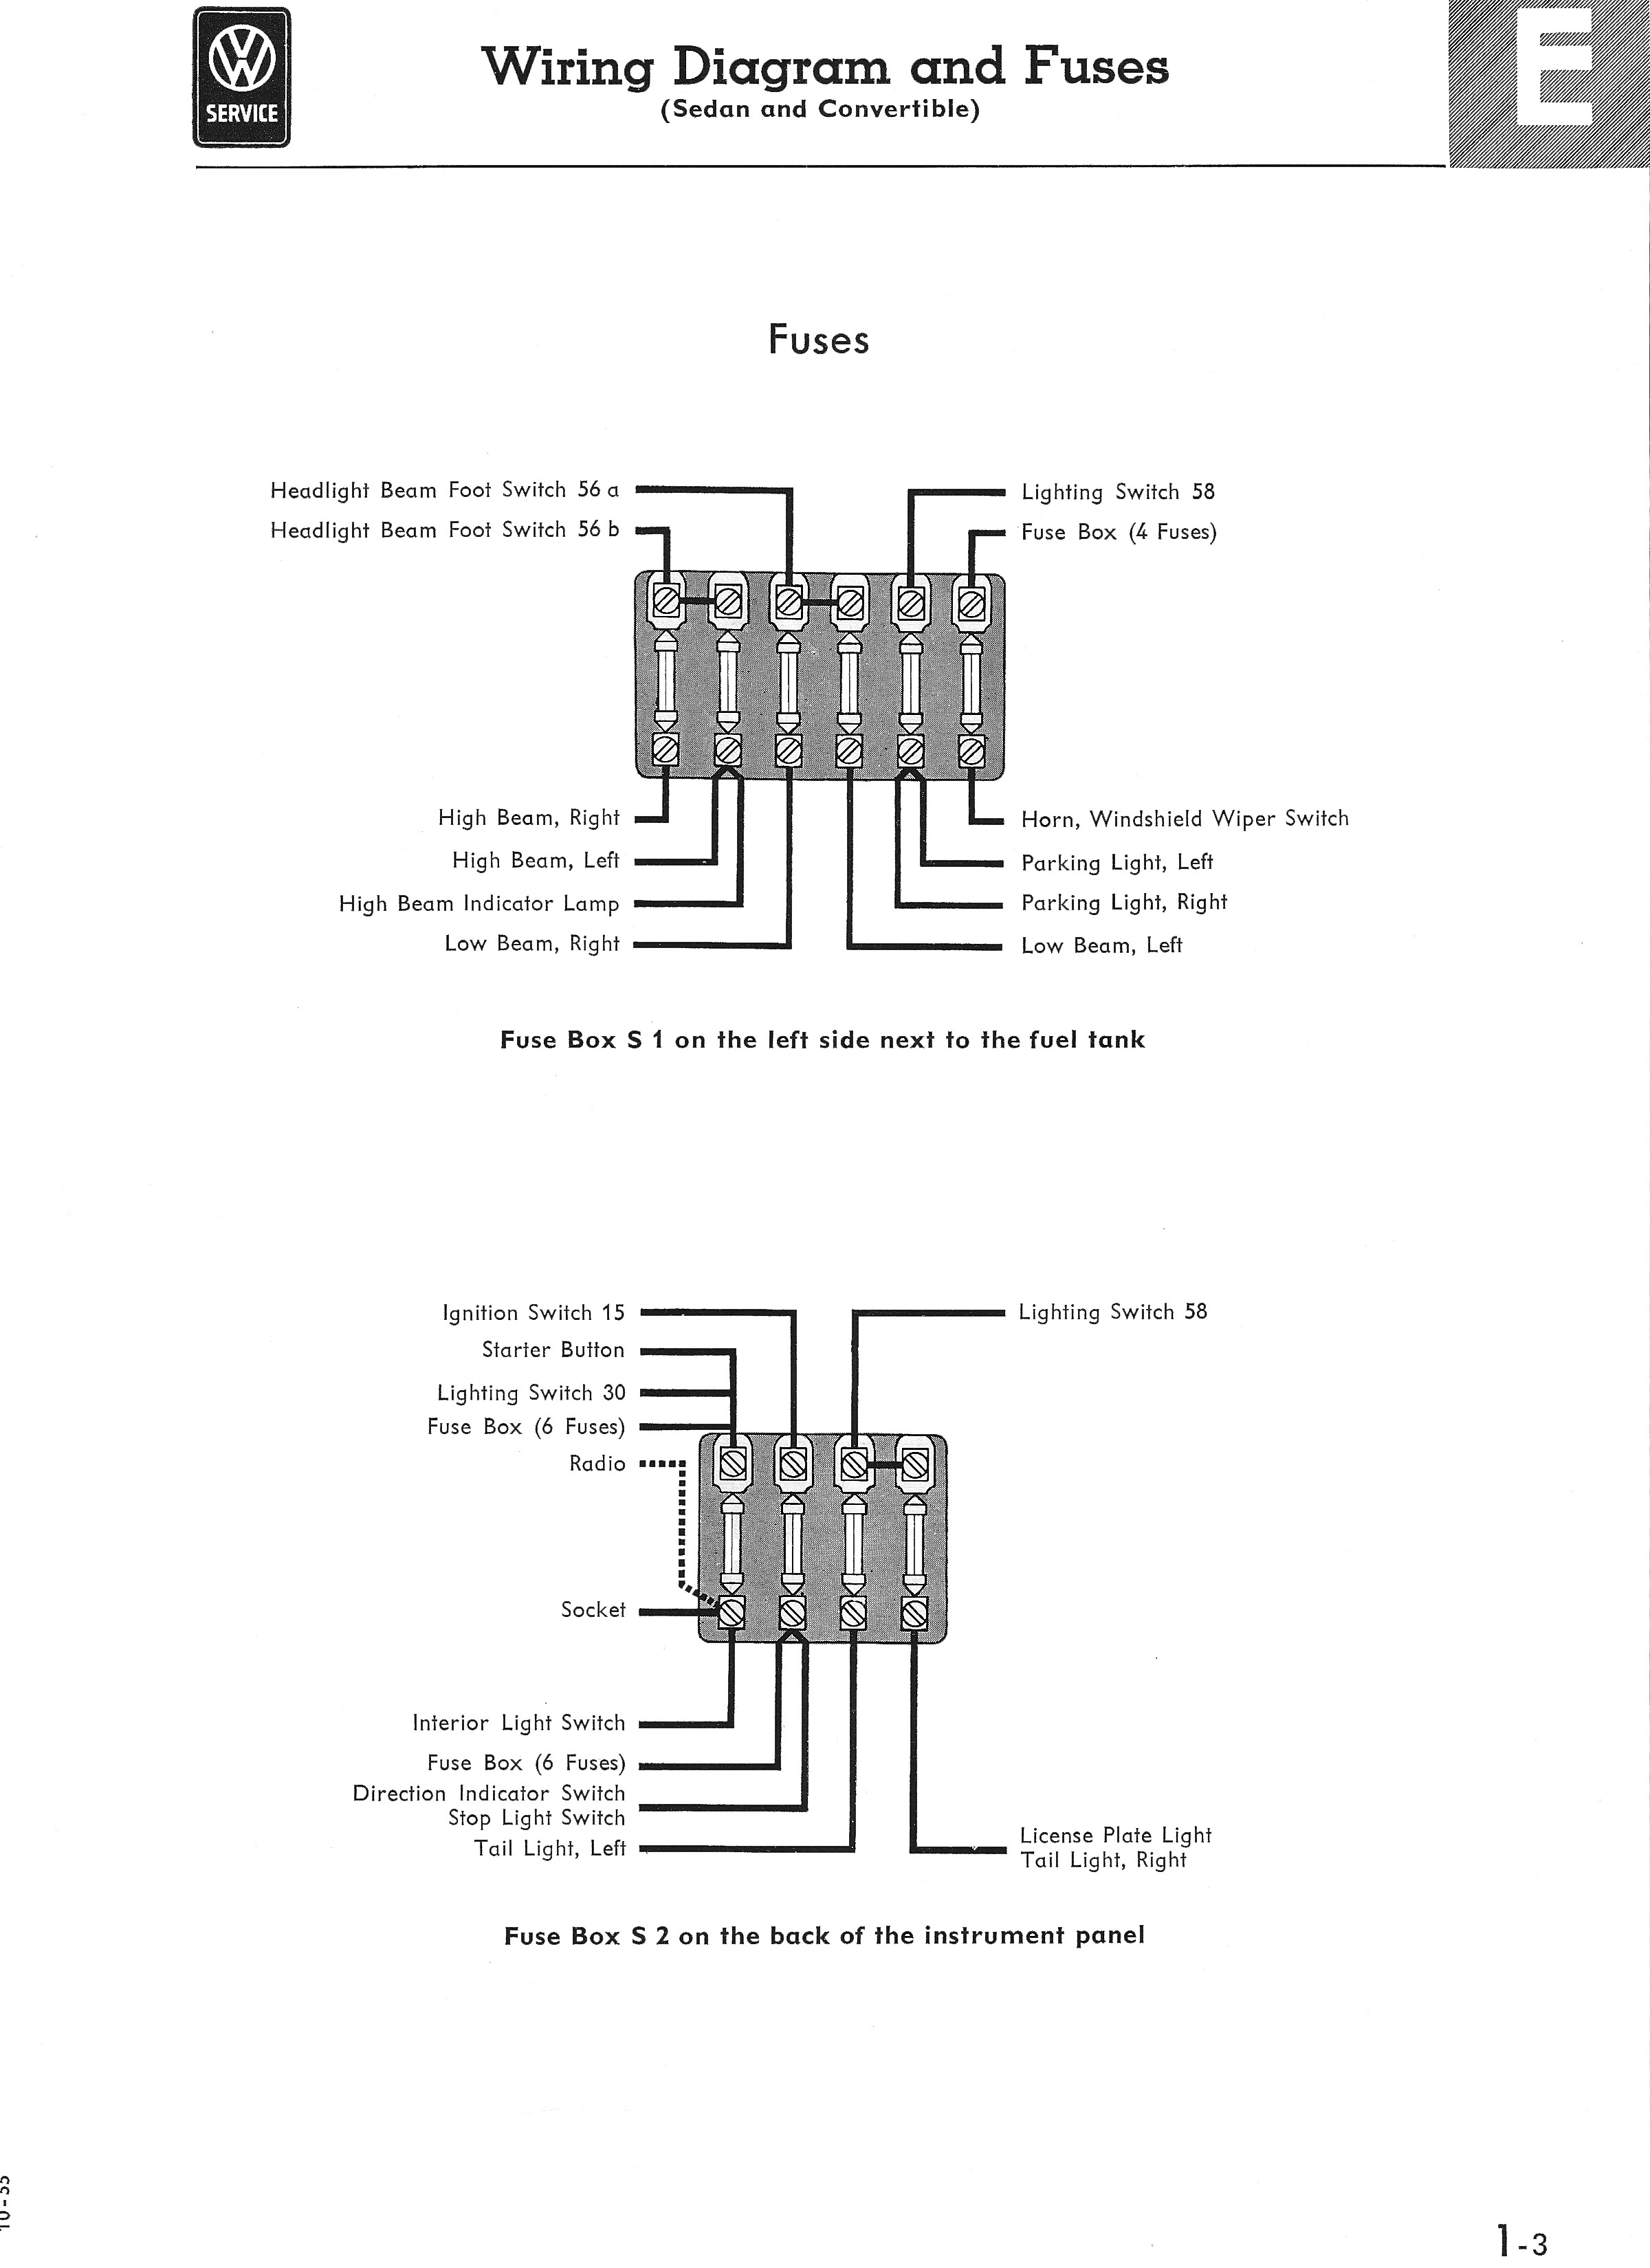 55 Chevy Radio Wiring Diagram | Wiring Diagram on